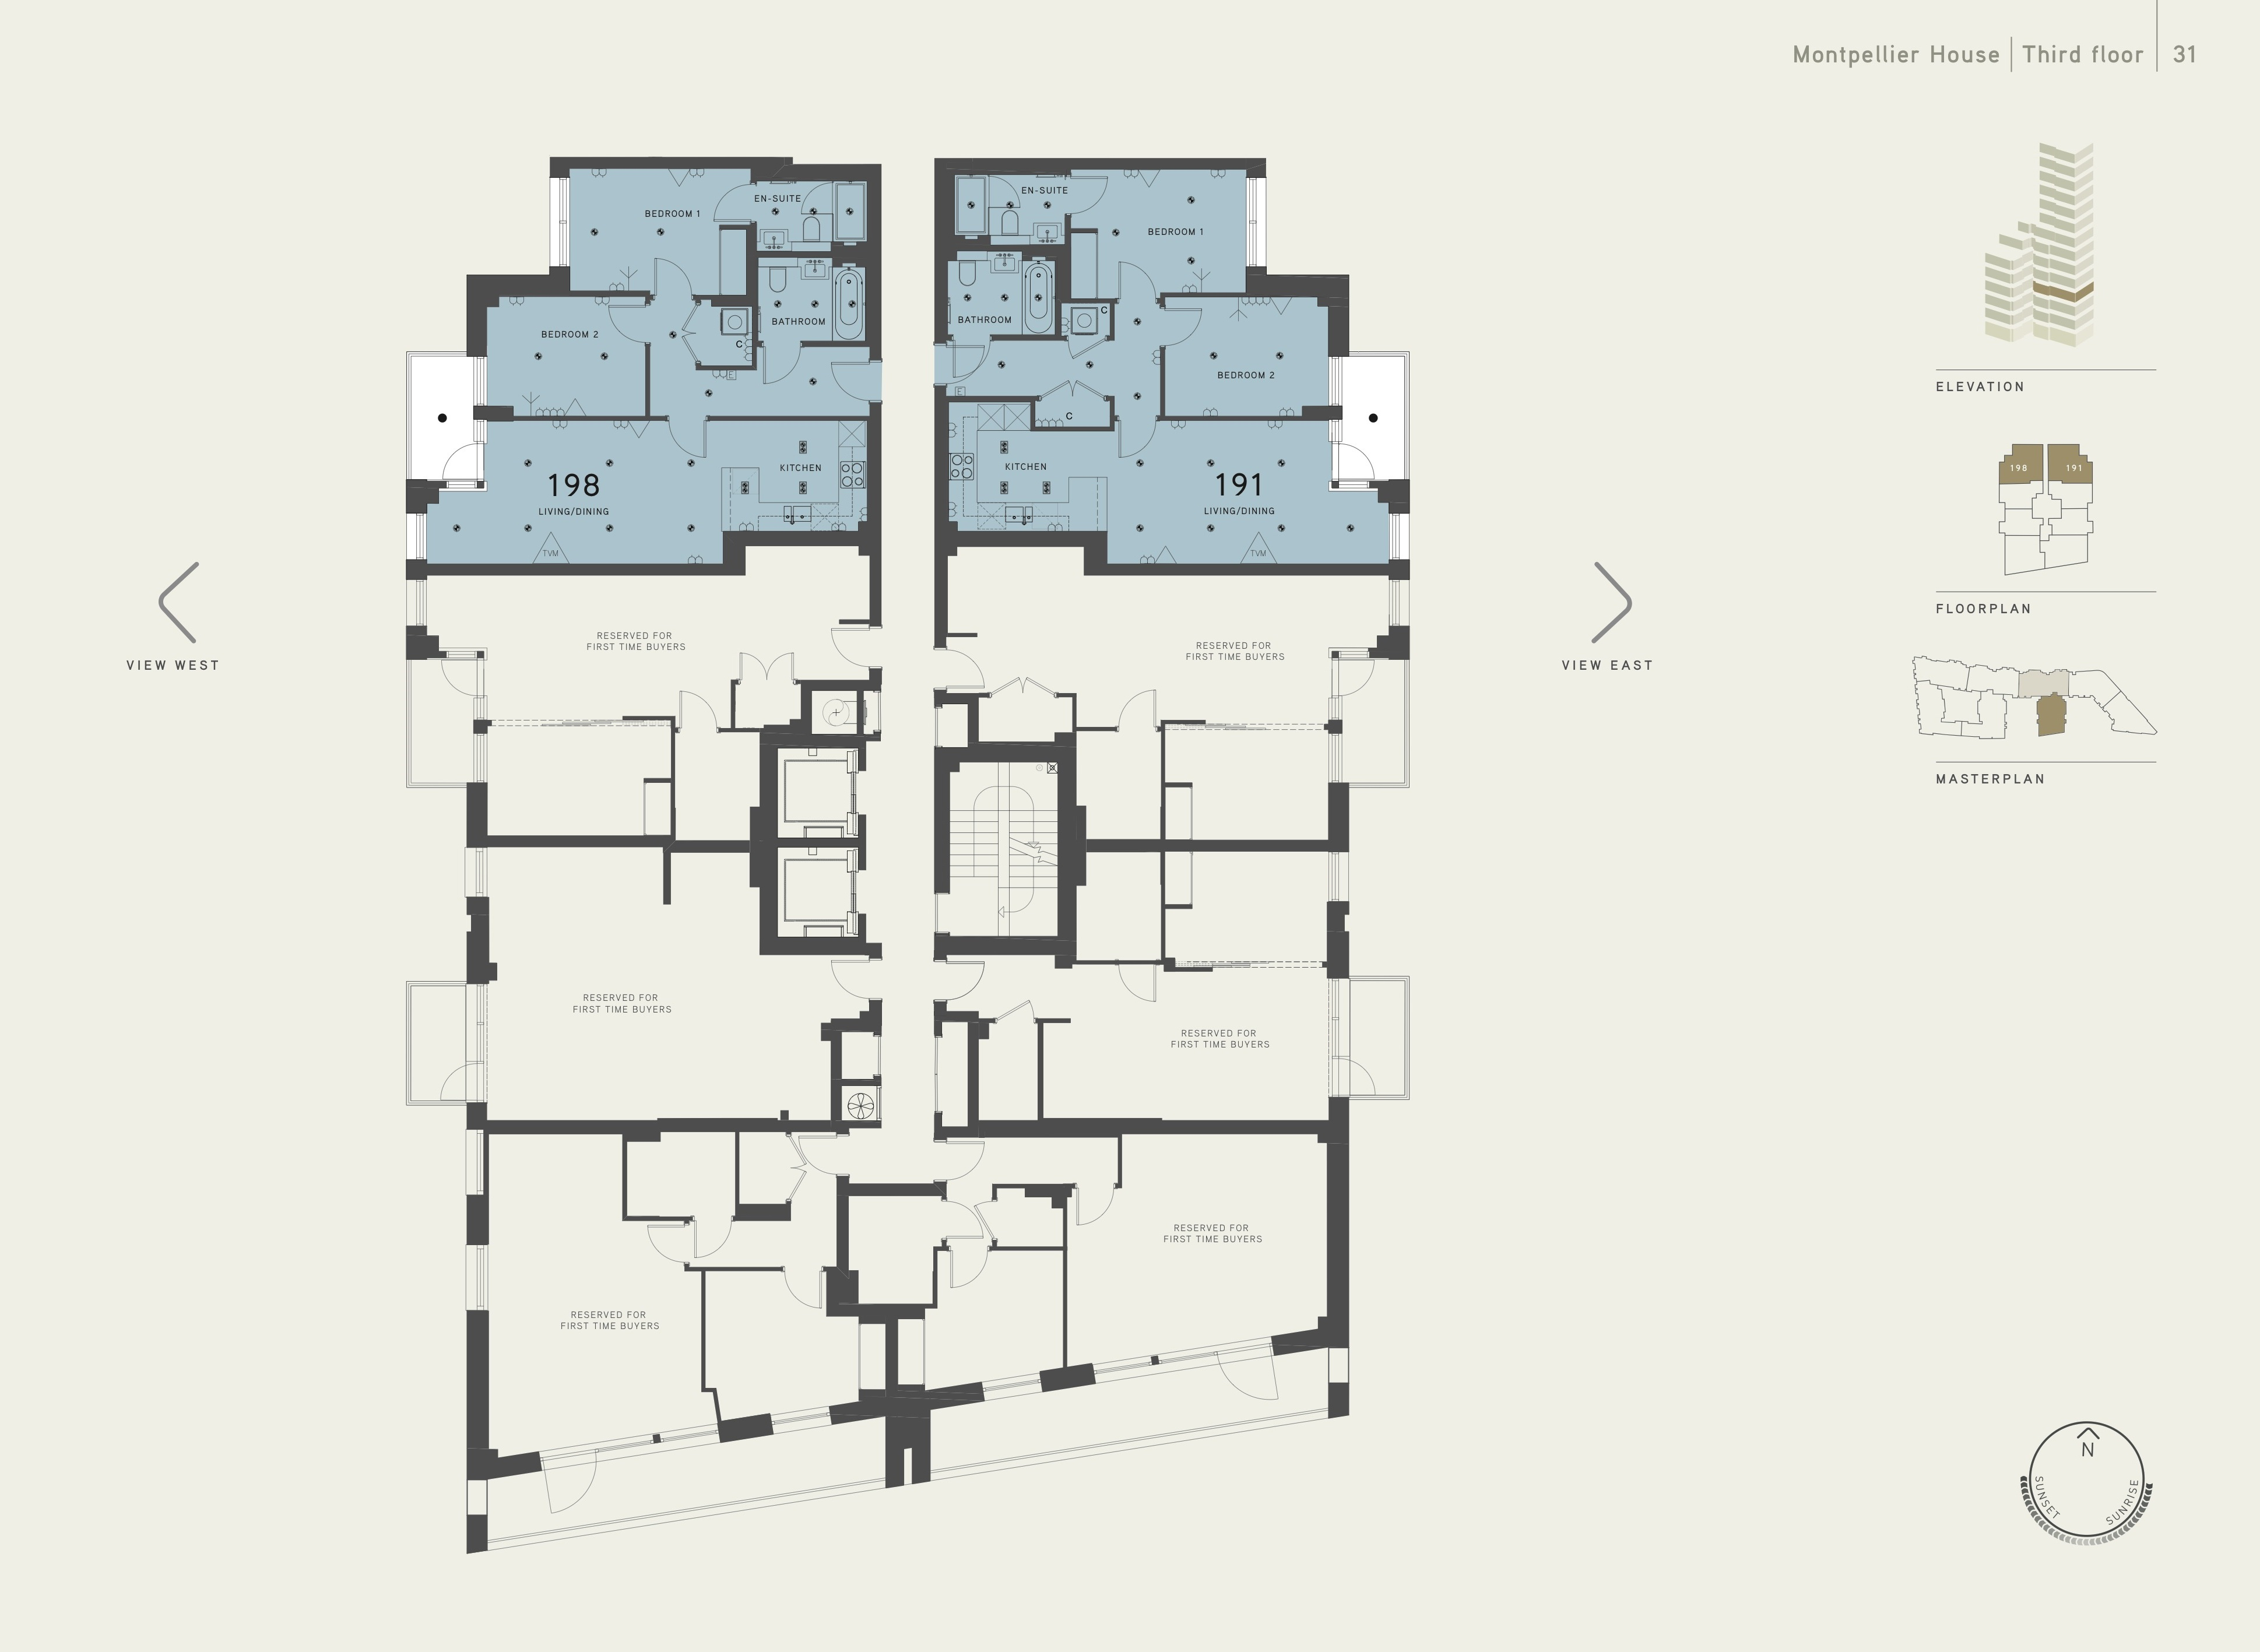 Sovereign court montpellier floor plans hammersmith and for 125 court street floor plans